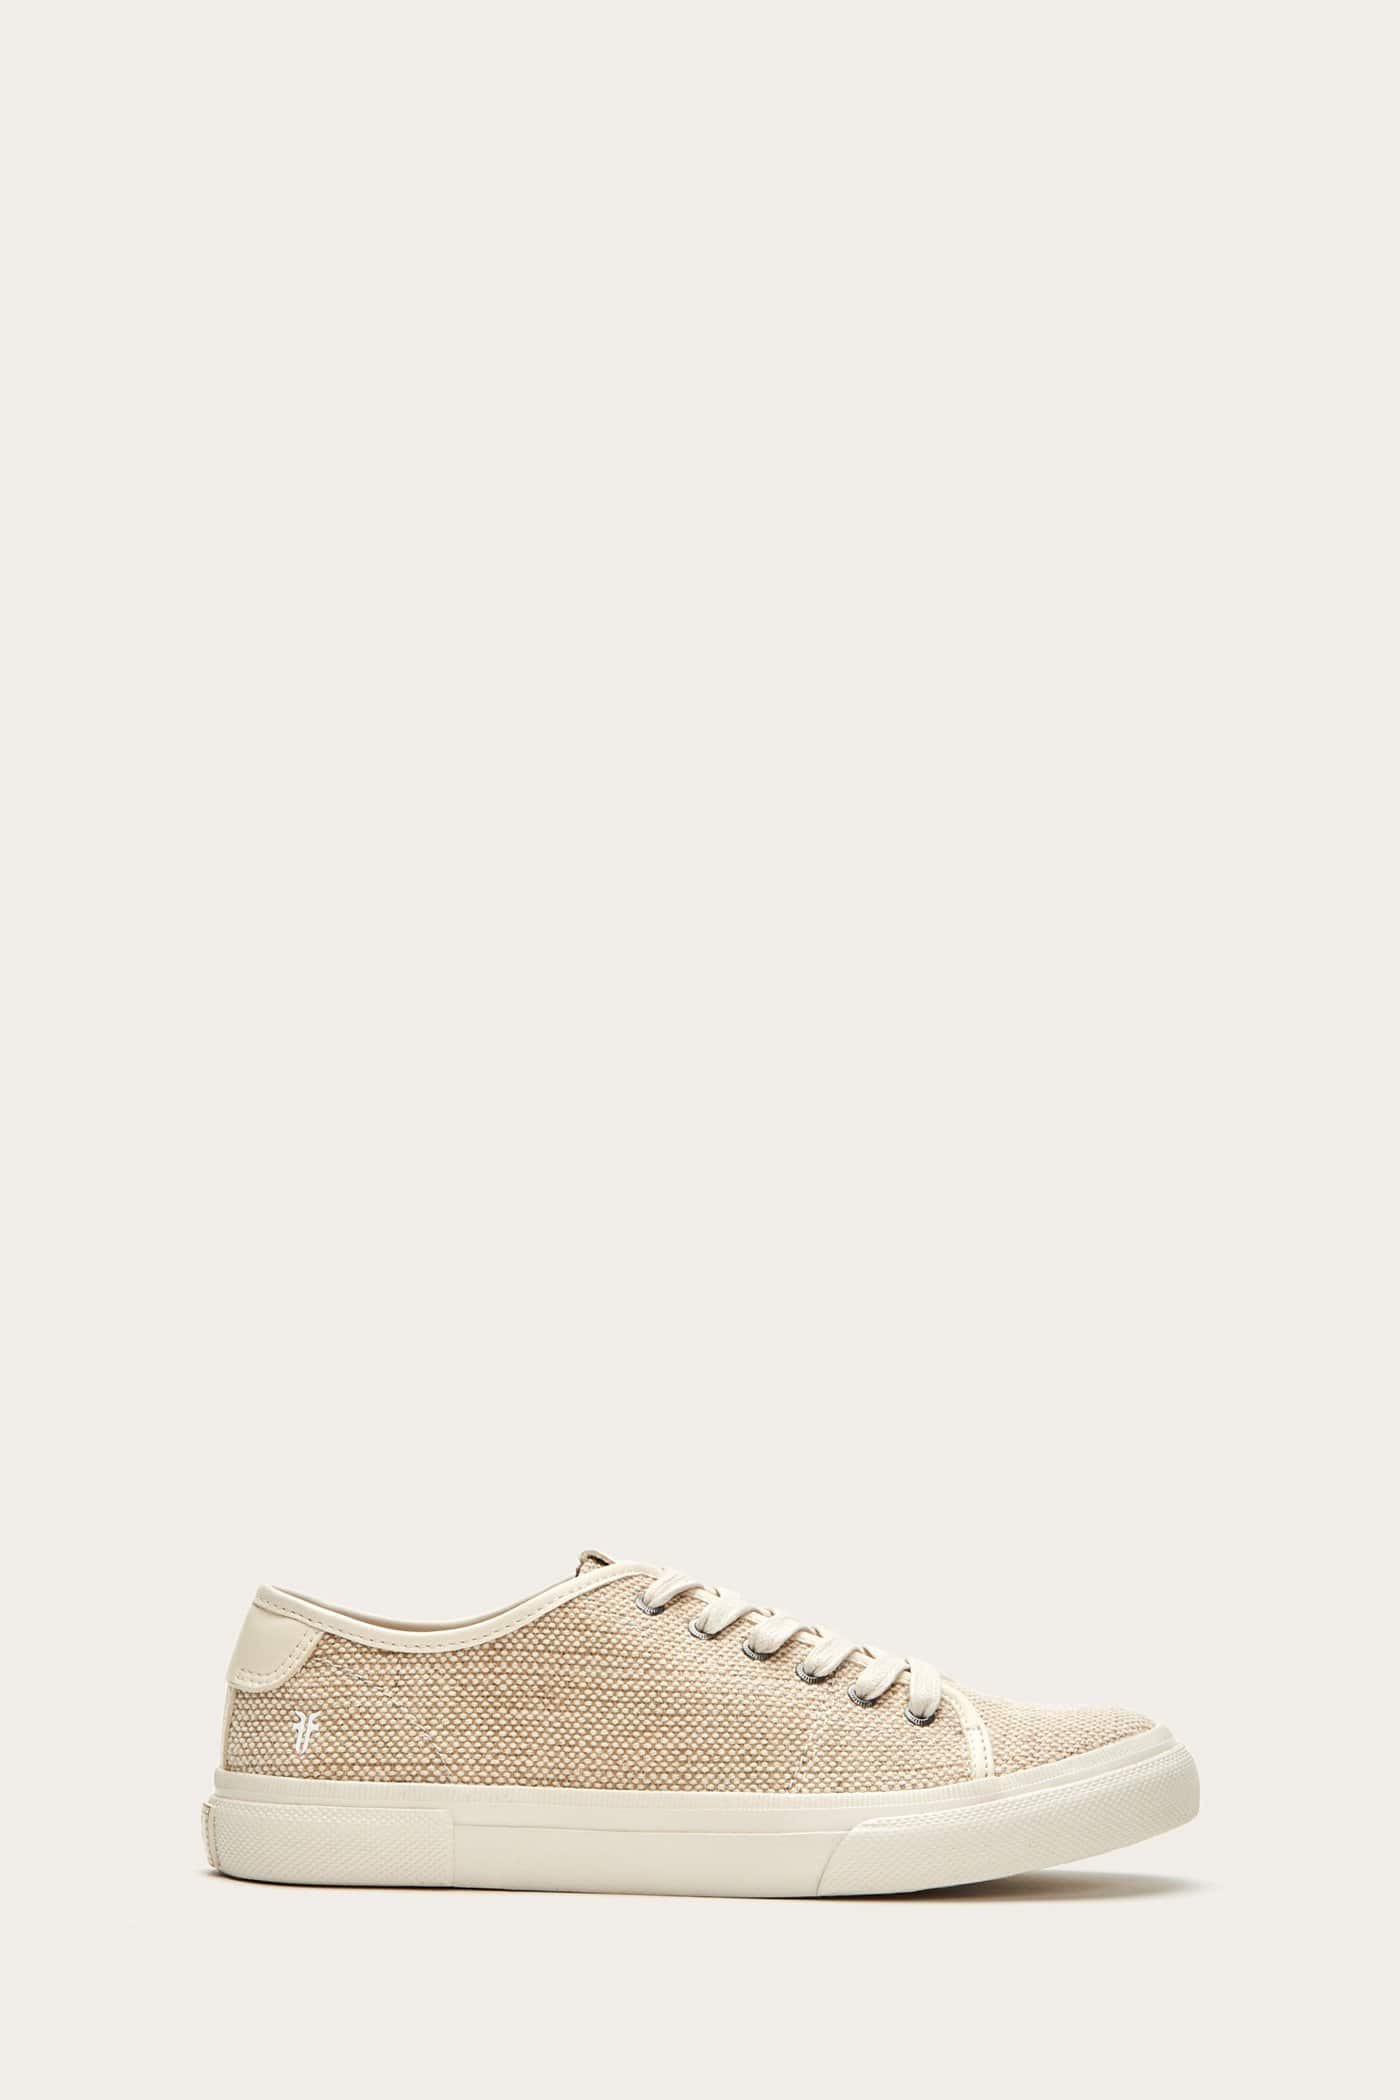 The Frye Company Women's Gia Canvas Low Lace Sneakers $36.75, Men's Mesa Venetian Loafer $59.25 & More + FS